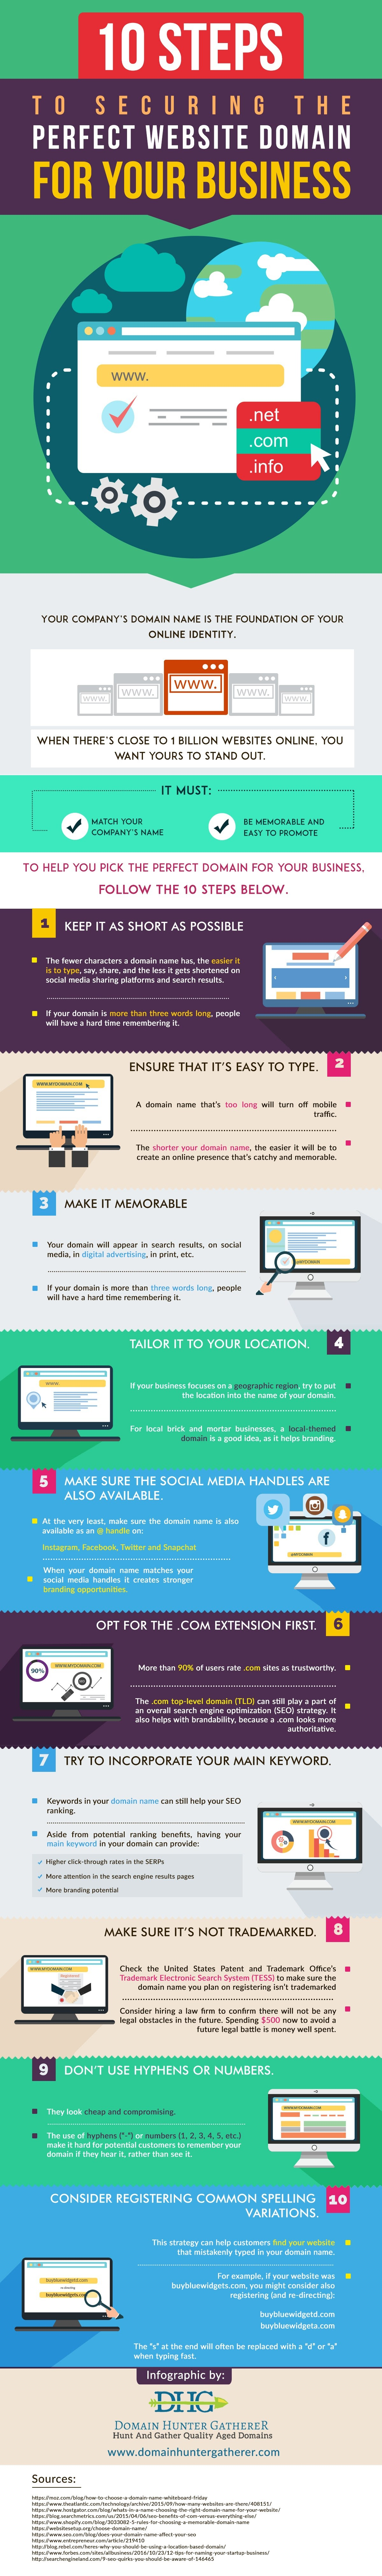 10_Steps_to_Securing_the_Perfect_Website_Domain_for_Your_Business